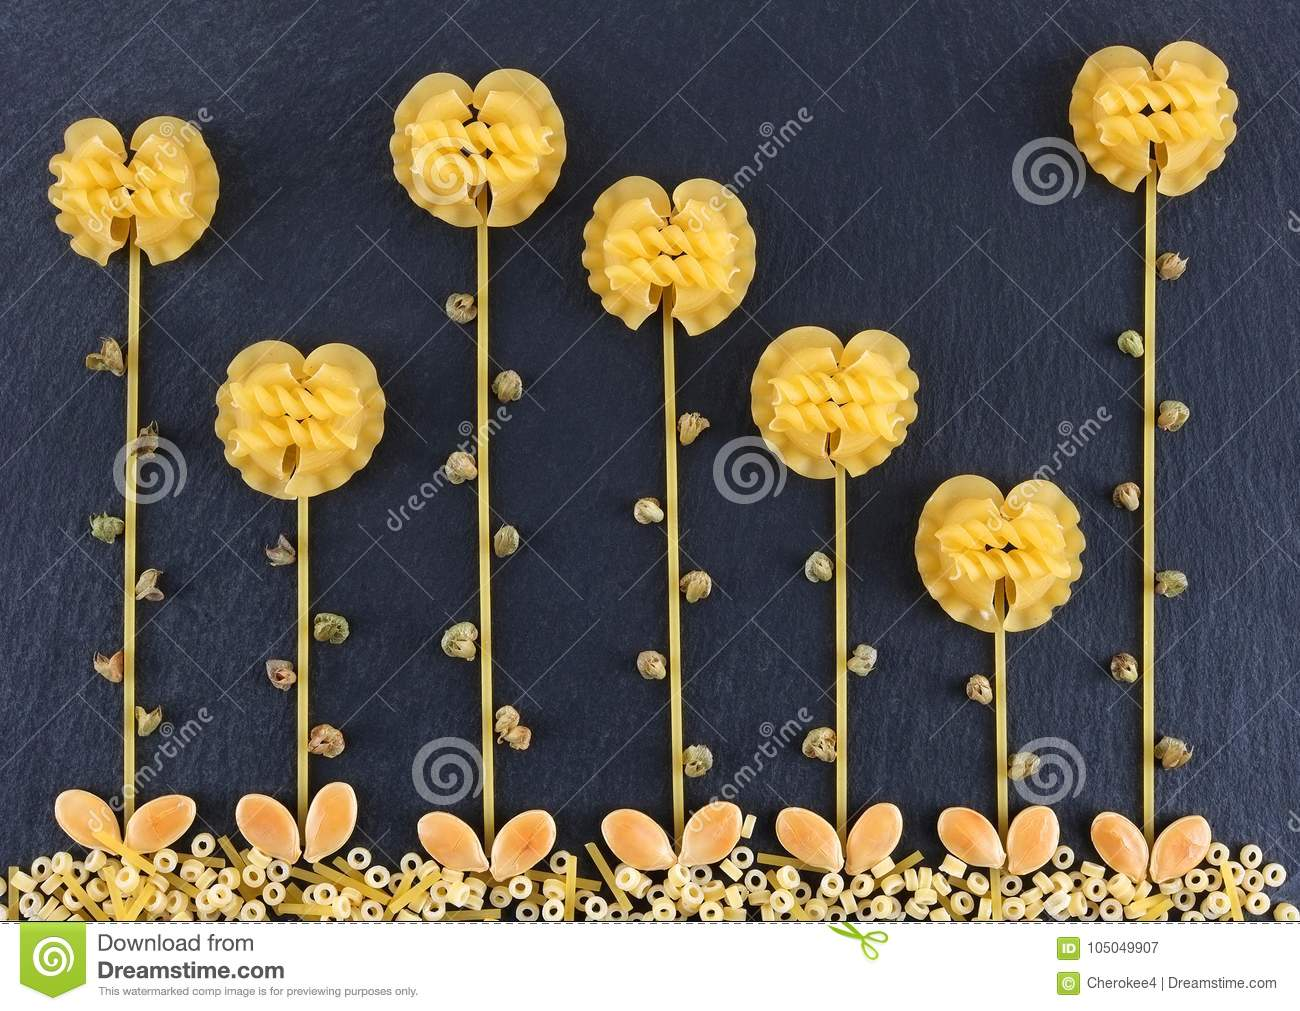 Flowers made out of various pasta on the dark slate background, topview. Flowers made from pasta.